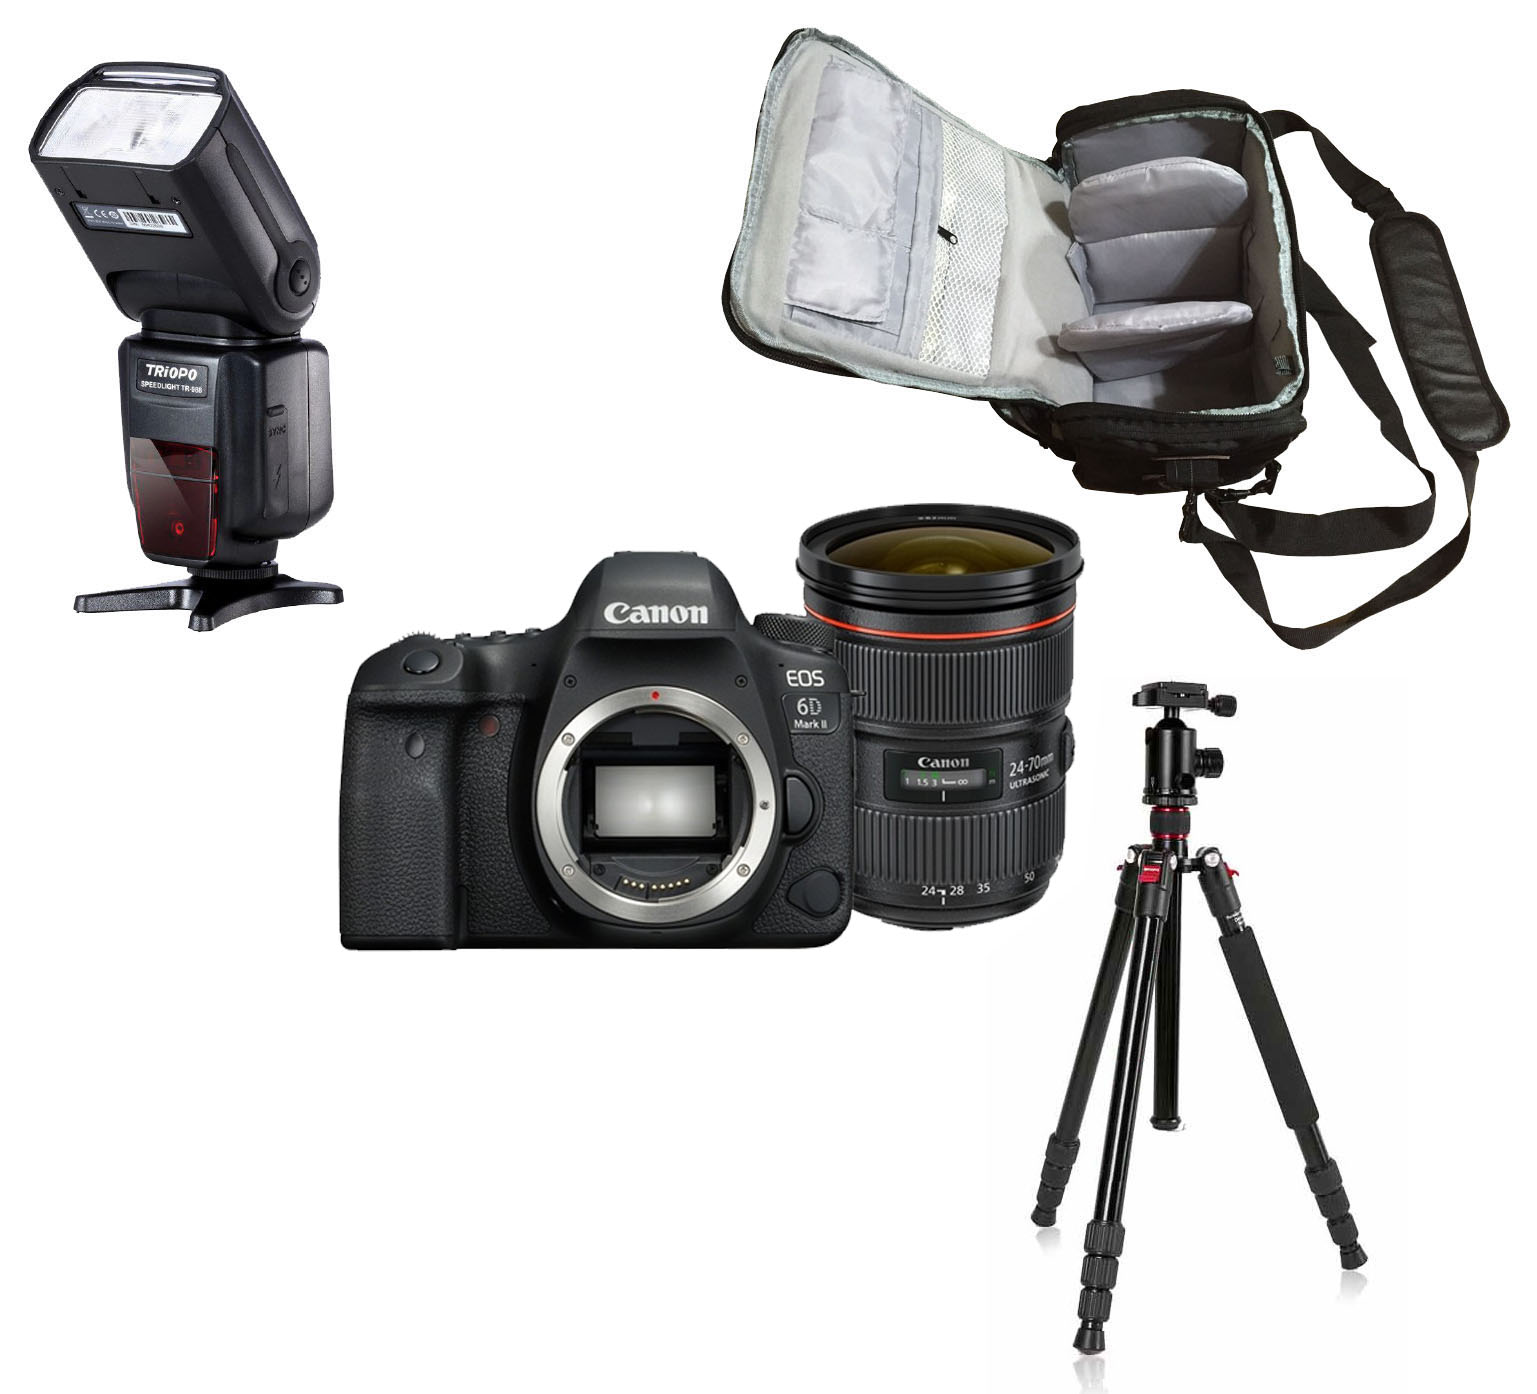 Canon Eos 6d Mark Ii 24 70 Camera Bag Flash Tripod Kit